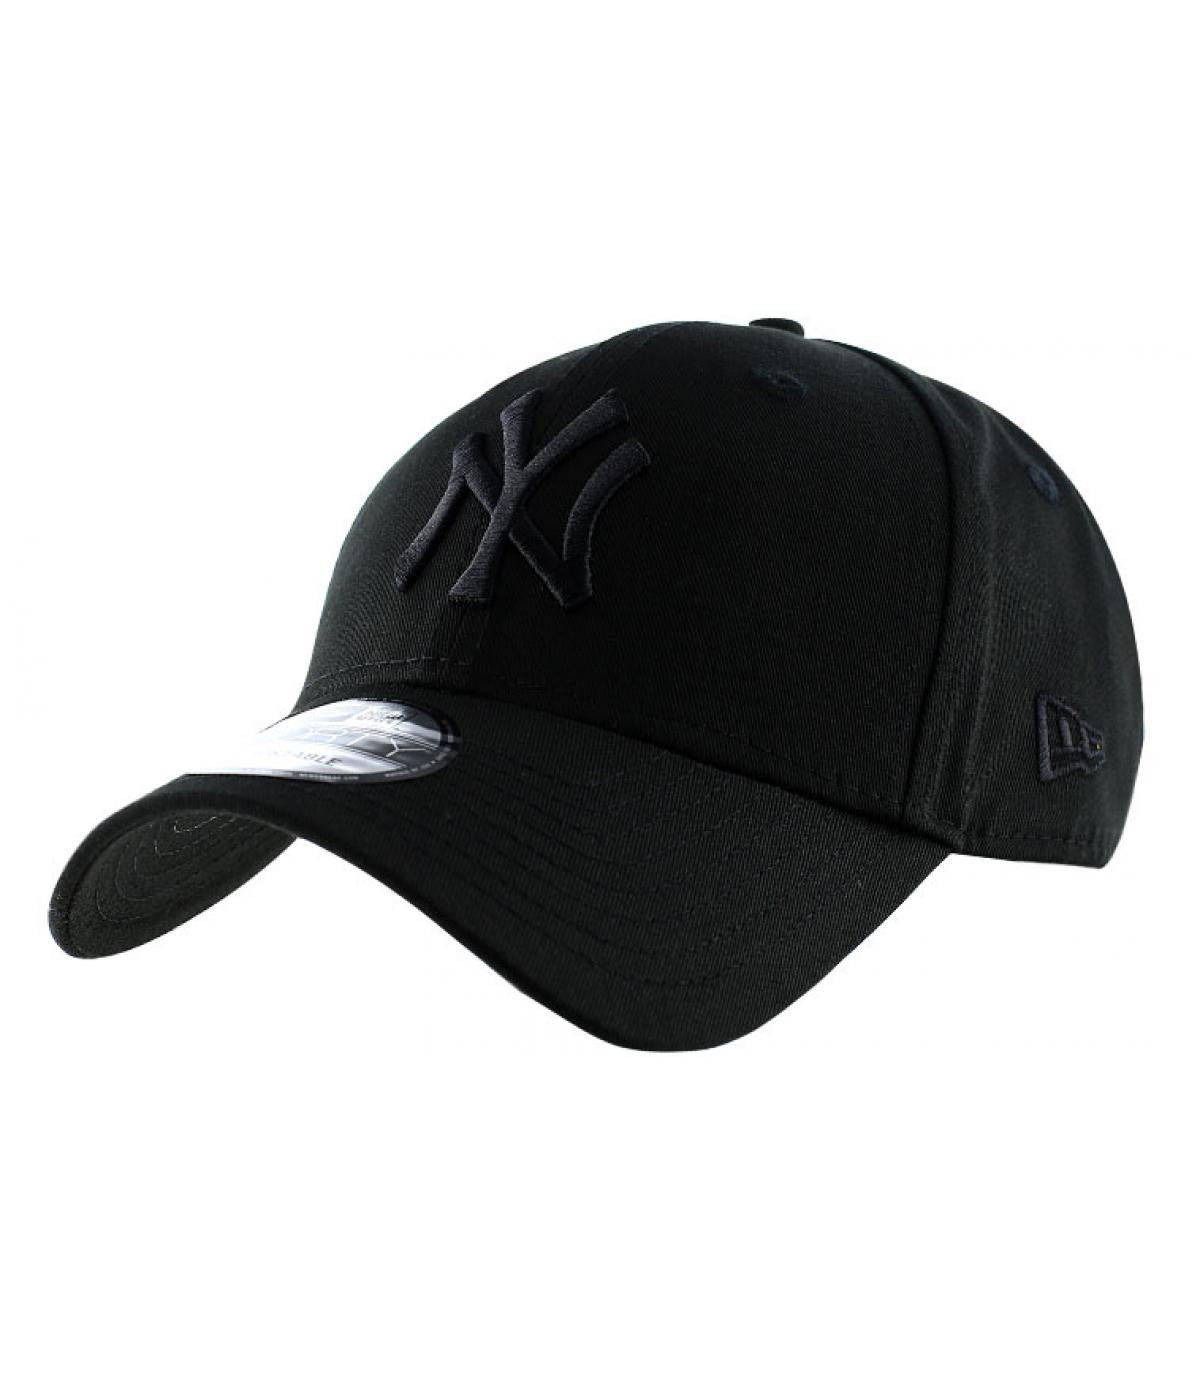 4829acc59c9 NY black baseball cap - NY league essential 9forty black cap by New ...